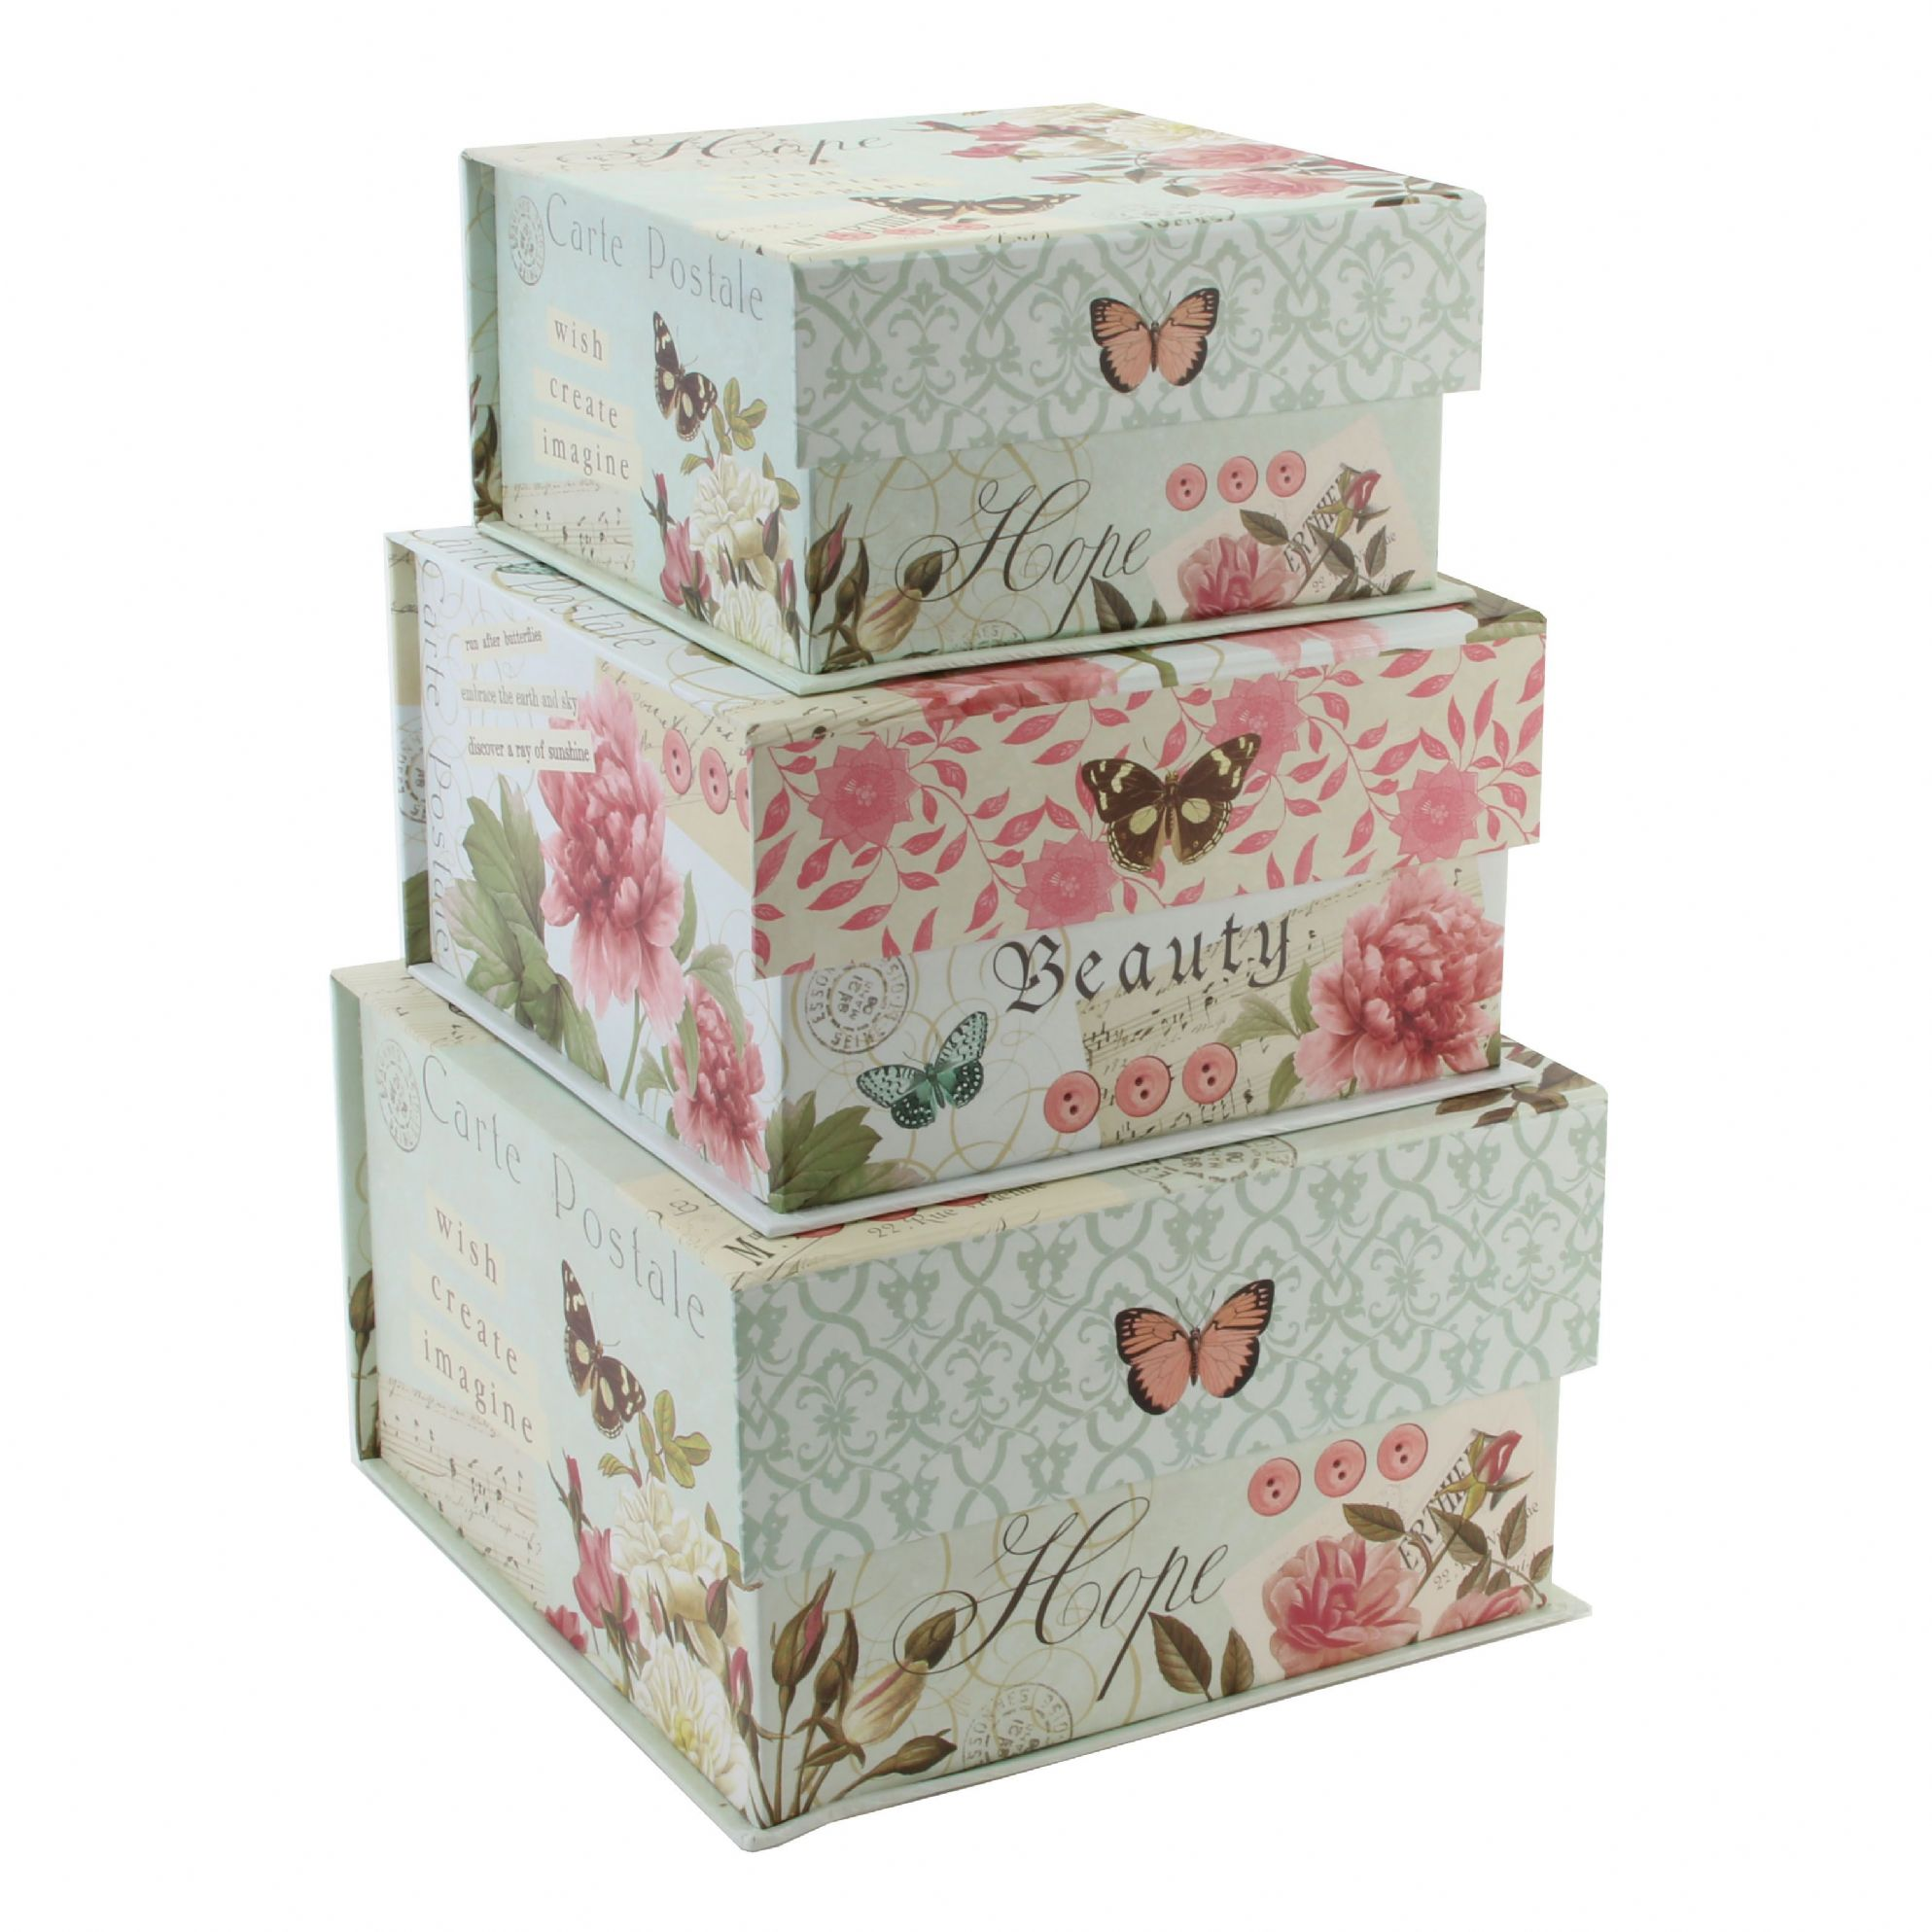 Decorative Boxes Uk: Pretty Storage Boxes. StorageWorks 40 L,Canvas Storage Box